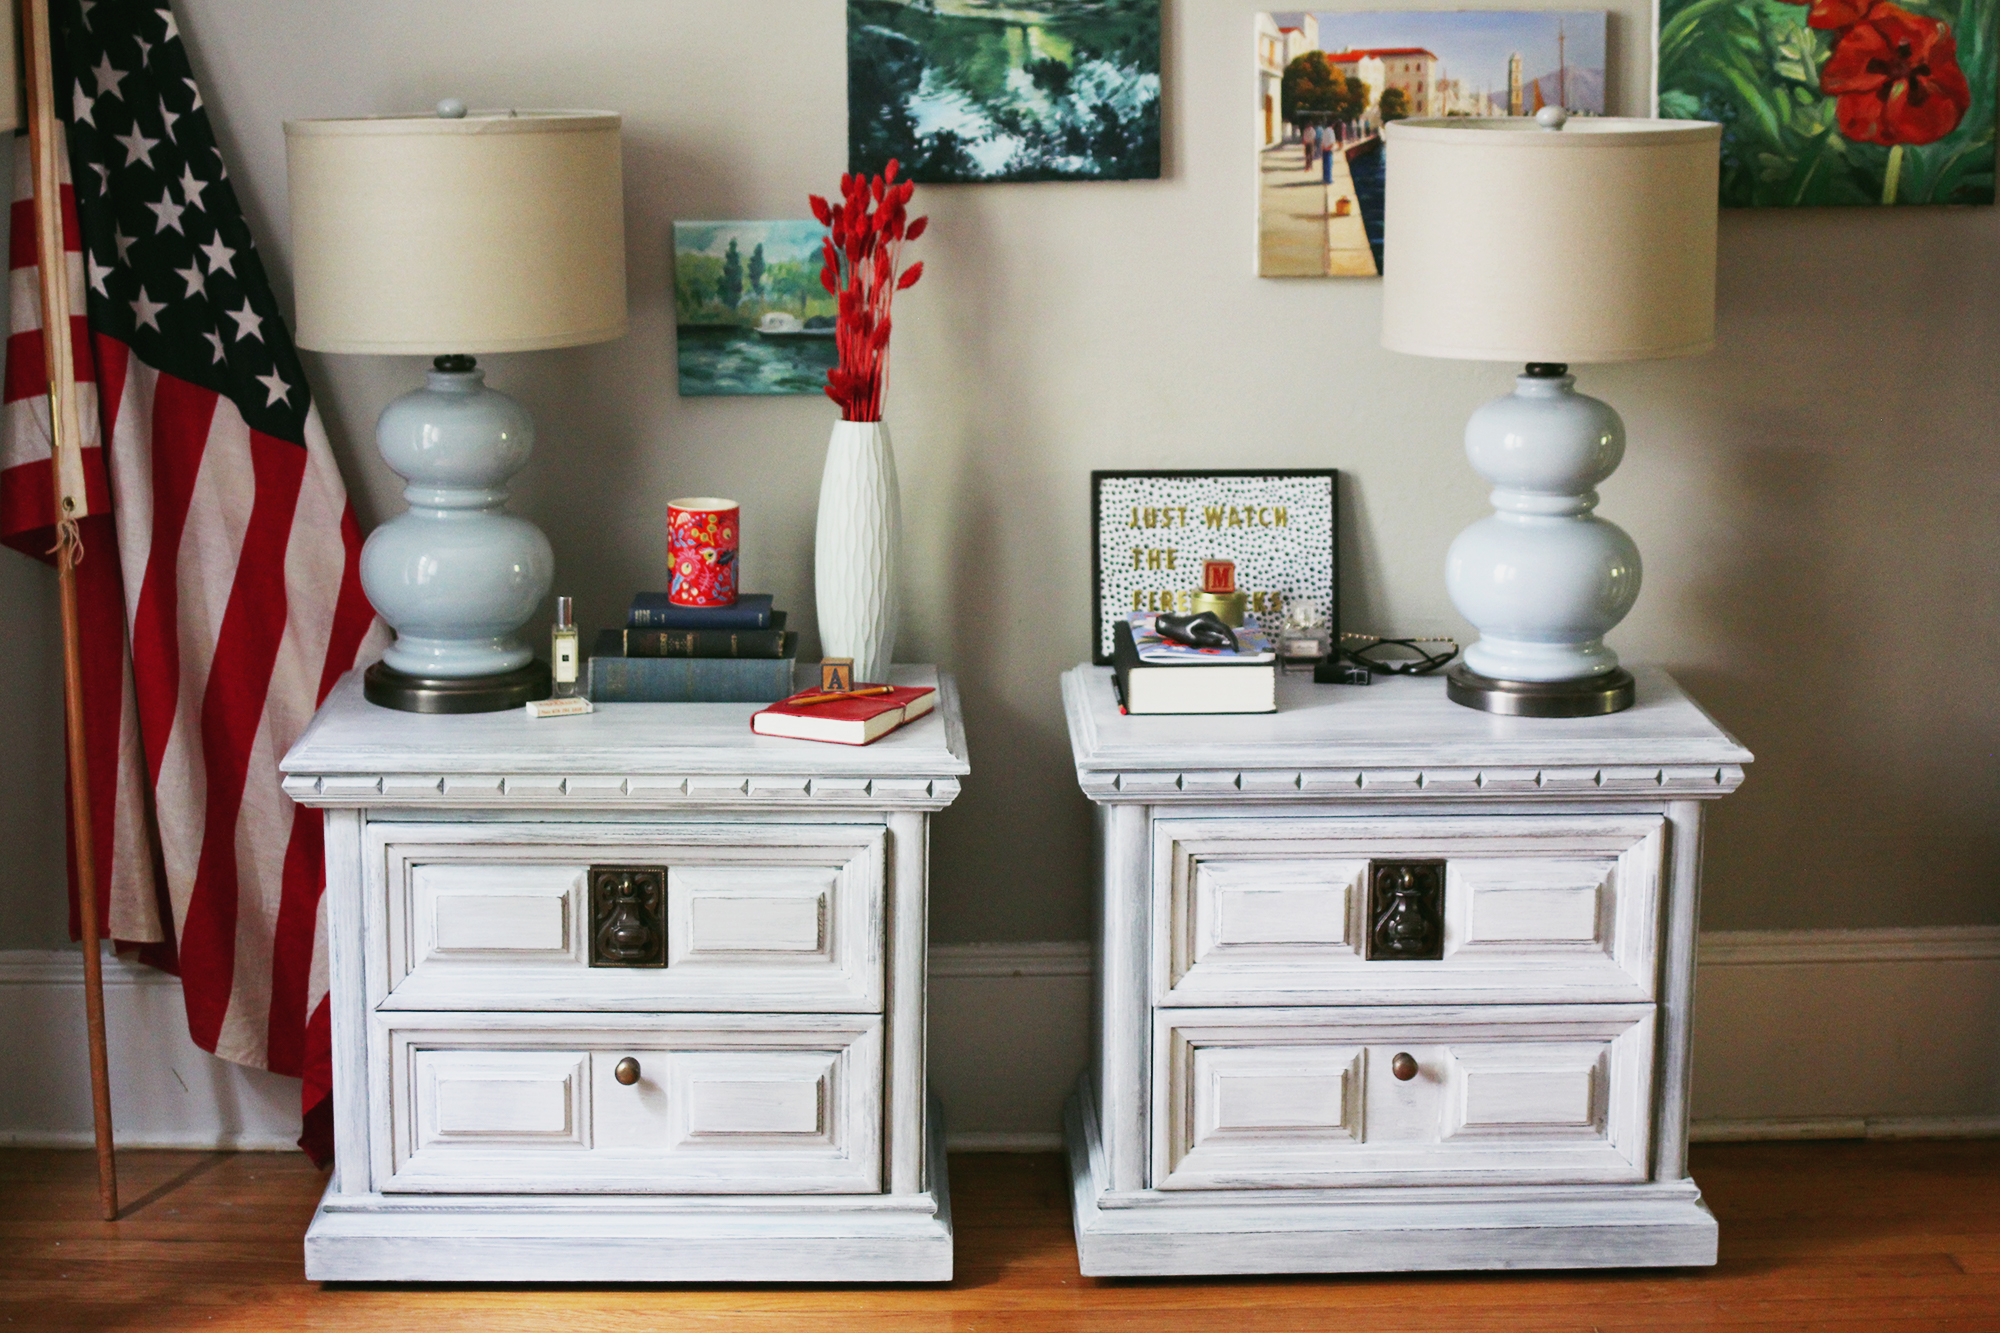 jo-torrijos-a-simpler-design-atlanta-painted-furniture-annie-sloan-chalk-paint-white-washed-nightstands-11.jpg